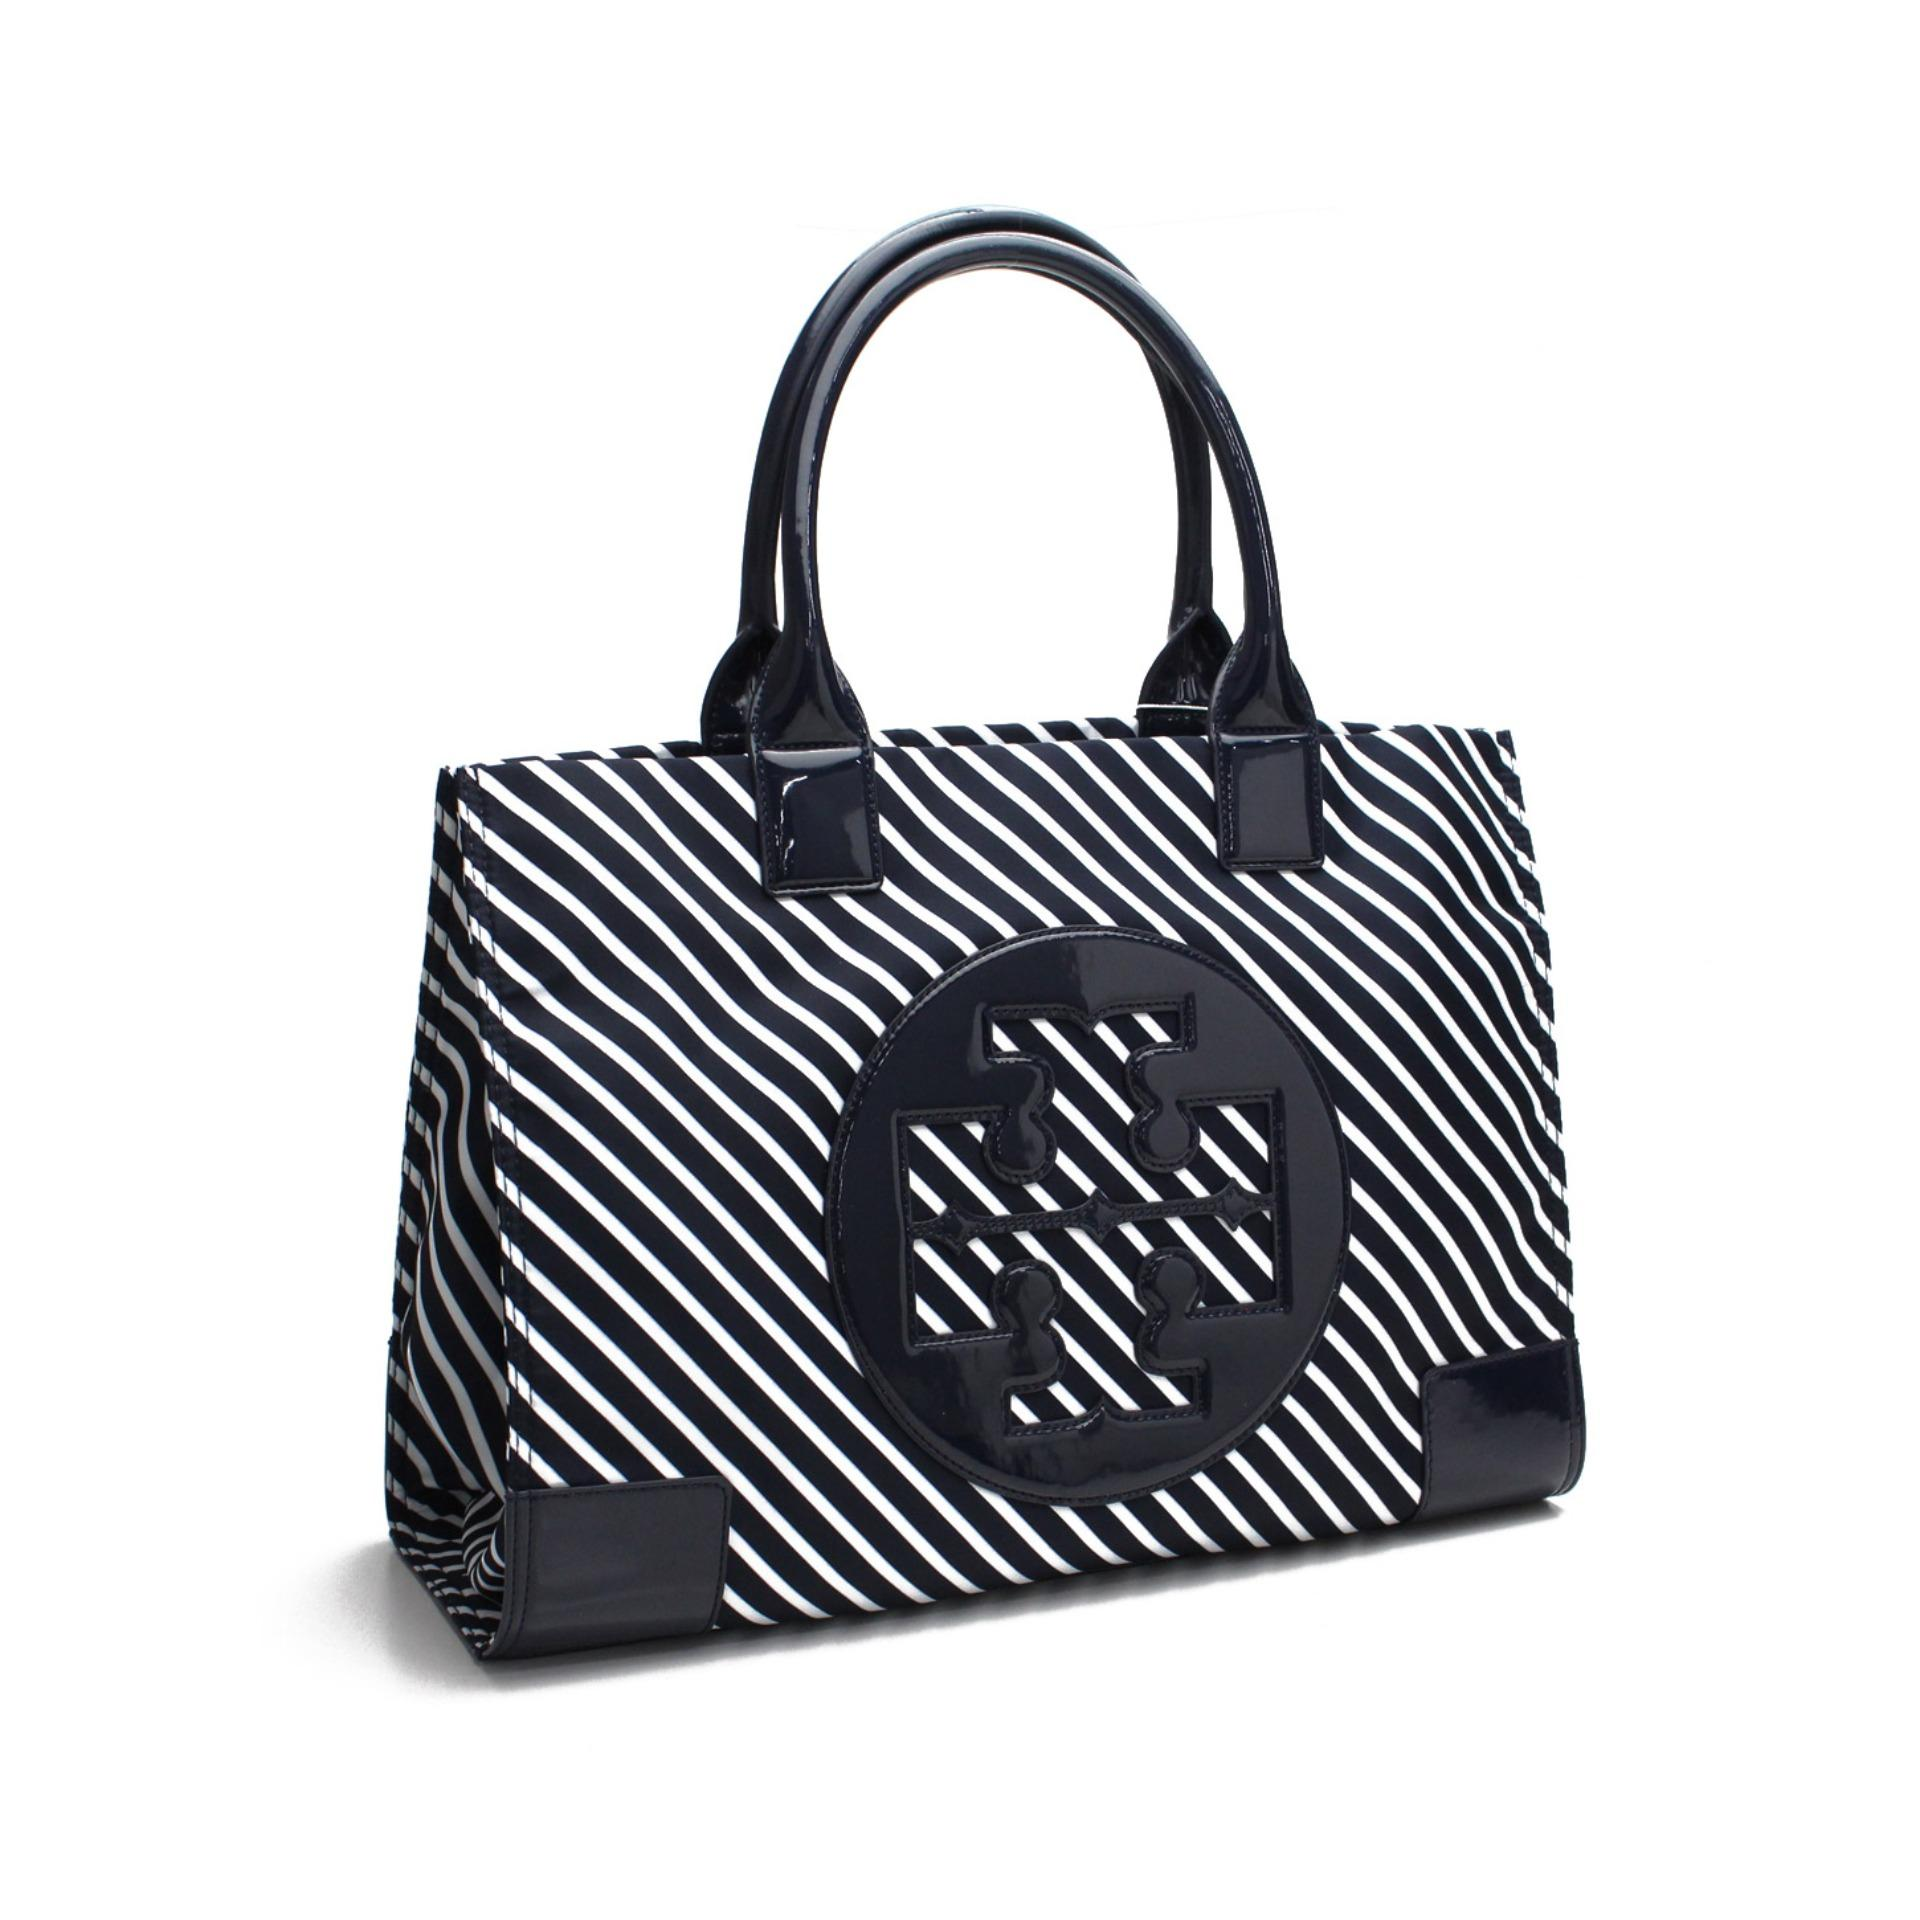 Tory Burch - Ella Tote Bag (White Stripes) (Authentic)